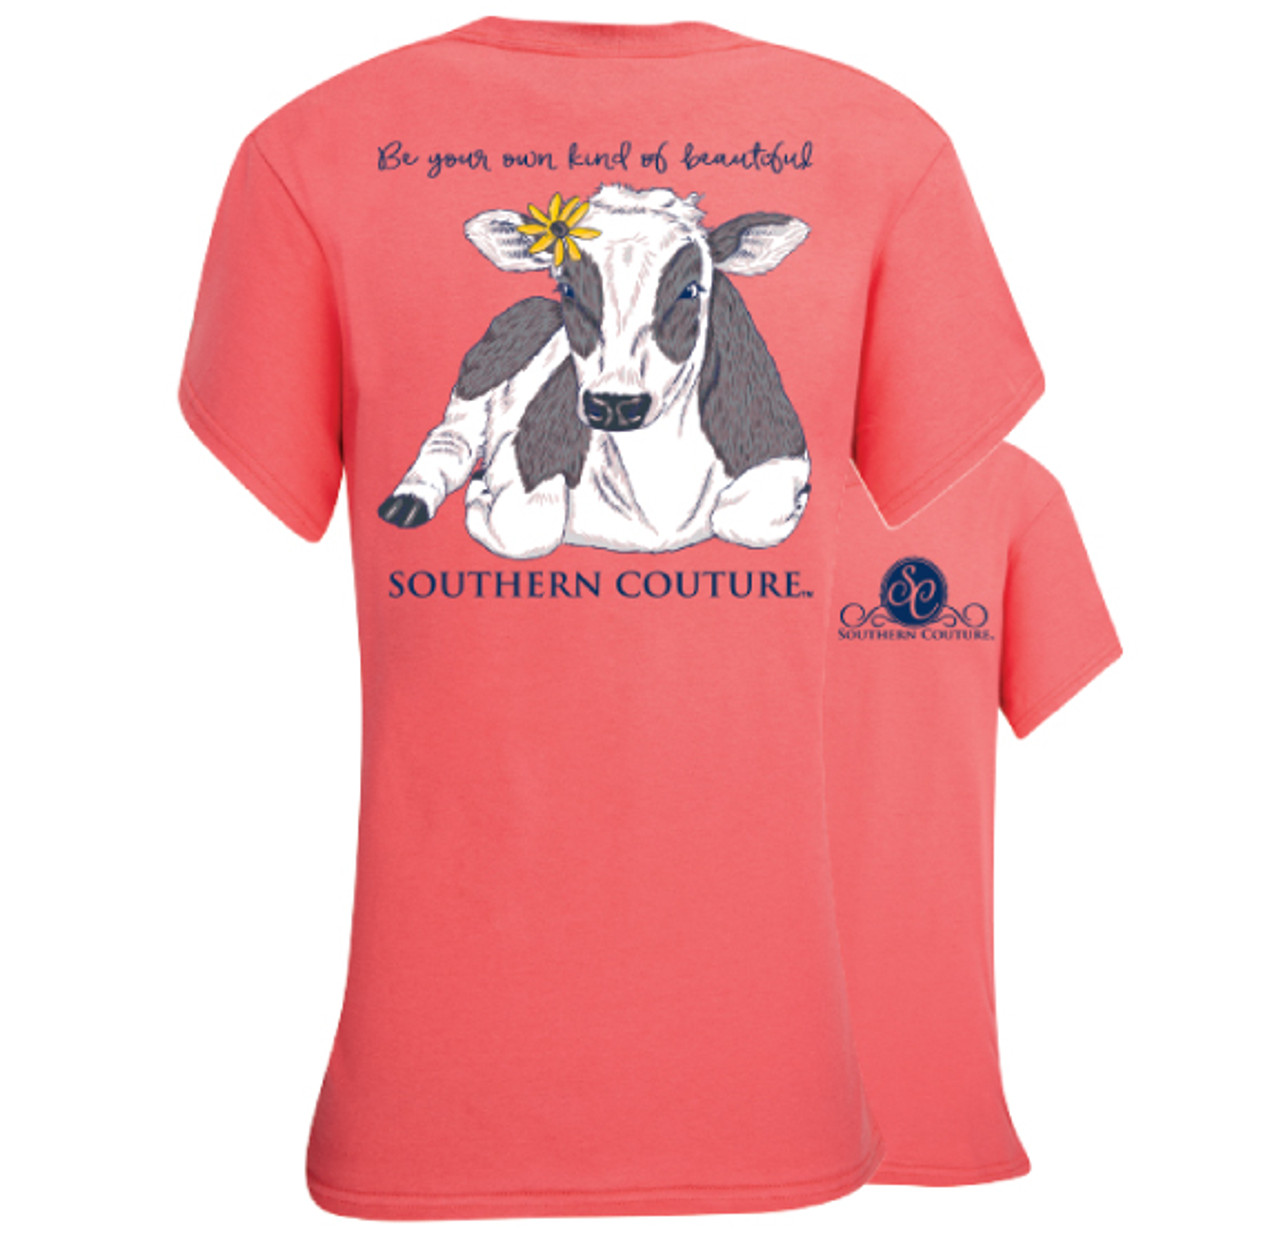 8d8b3f21 ... 213d1d80 Cow T-Shirts, Southern Couture Kind Of Beautiful Cow ...